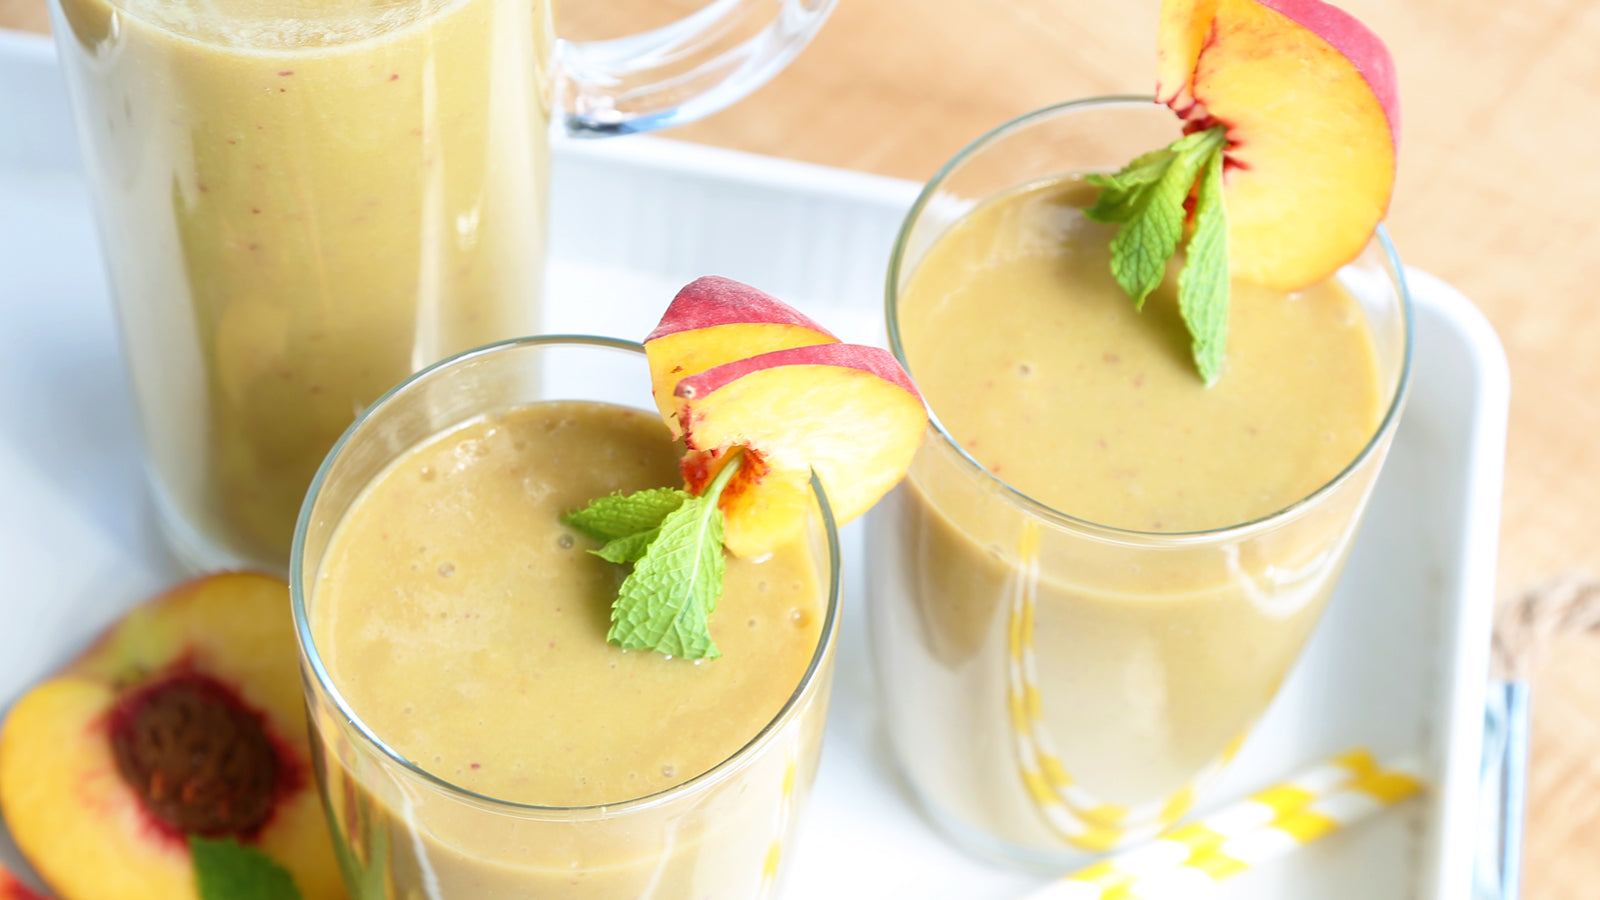 Peach Creamsicle Smoothie